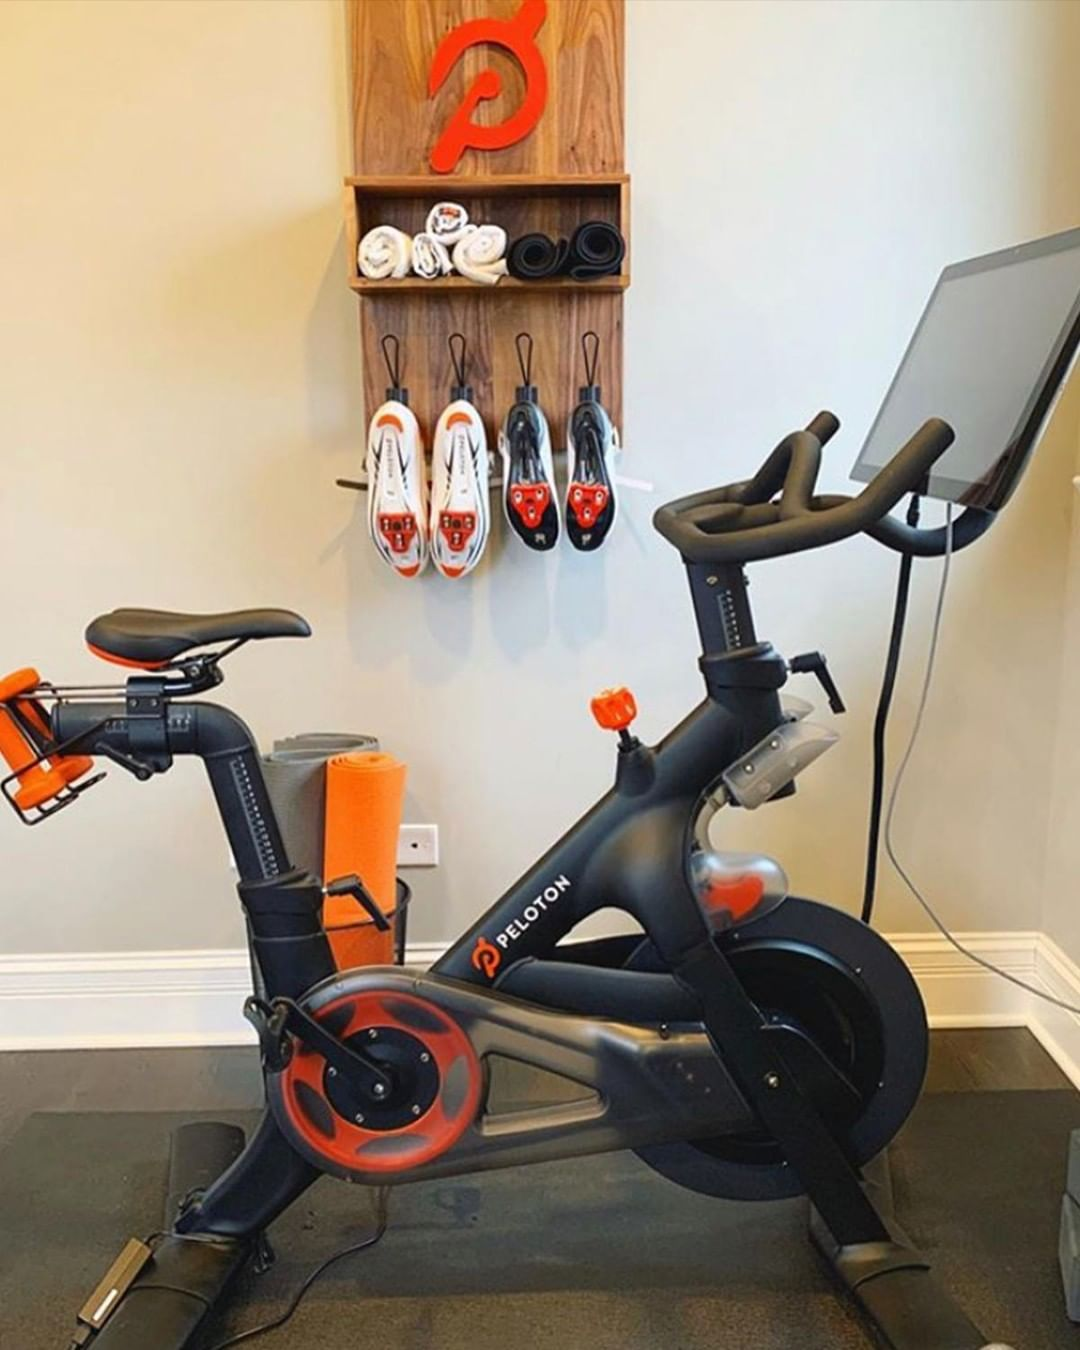 Peloton Onepeloton Instagram Photos And Videos In 2020 Workout Room Home Gym Room At Home Peloton